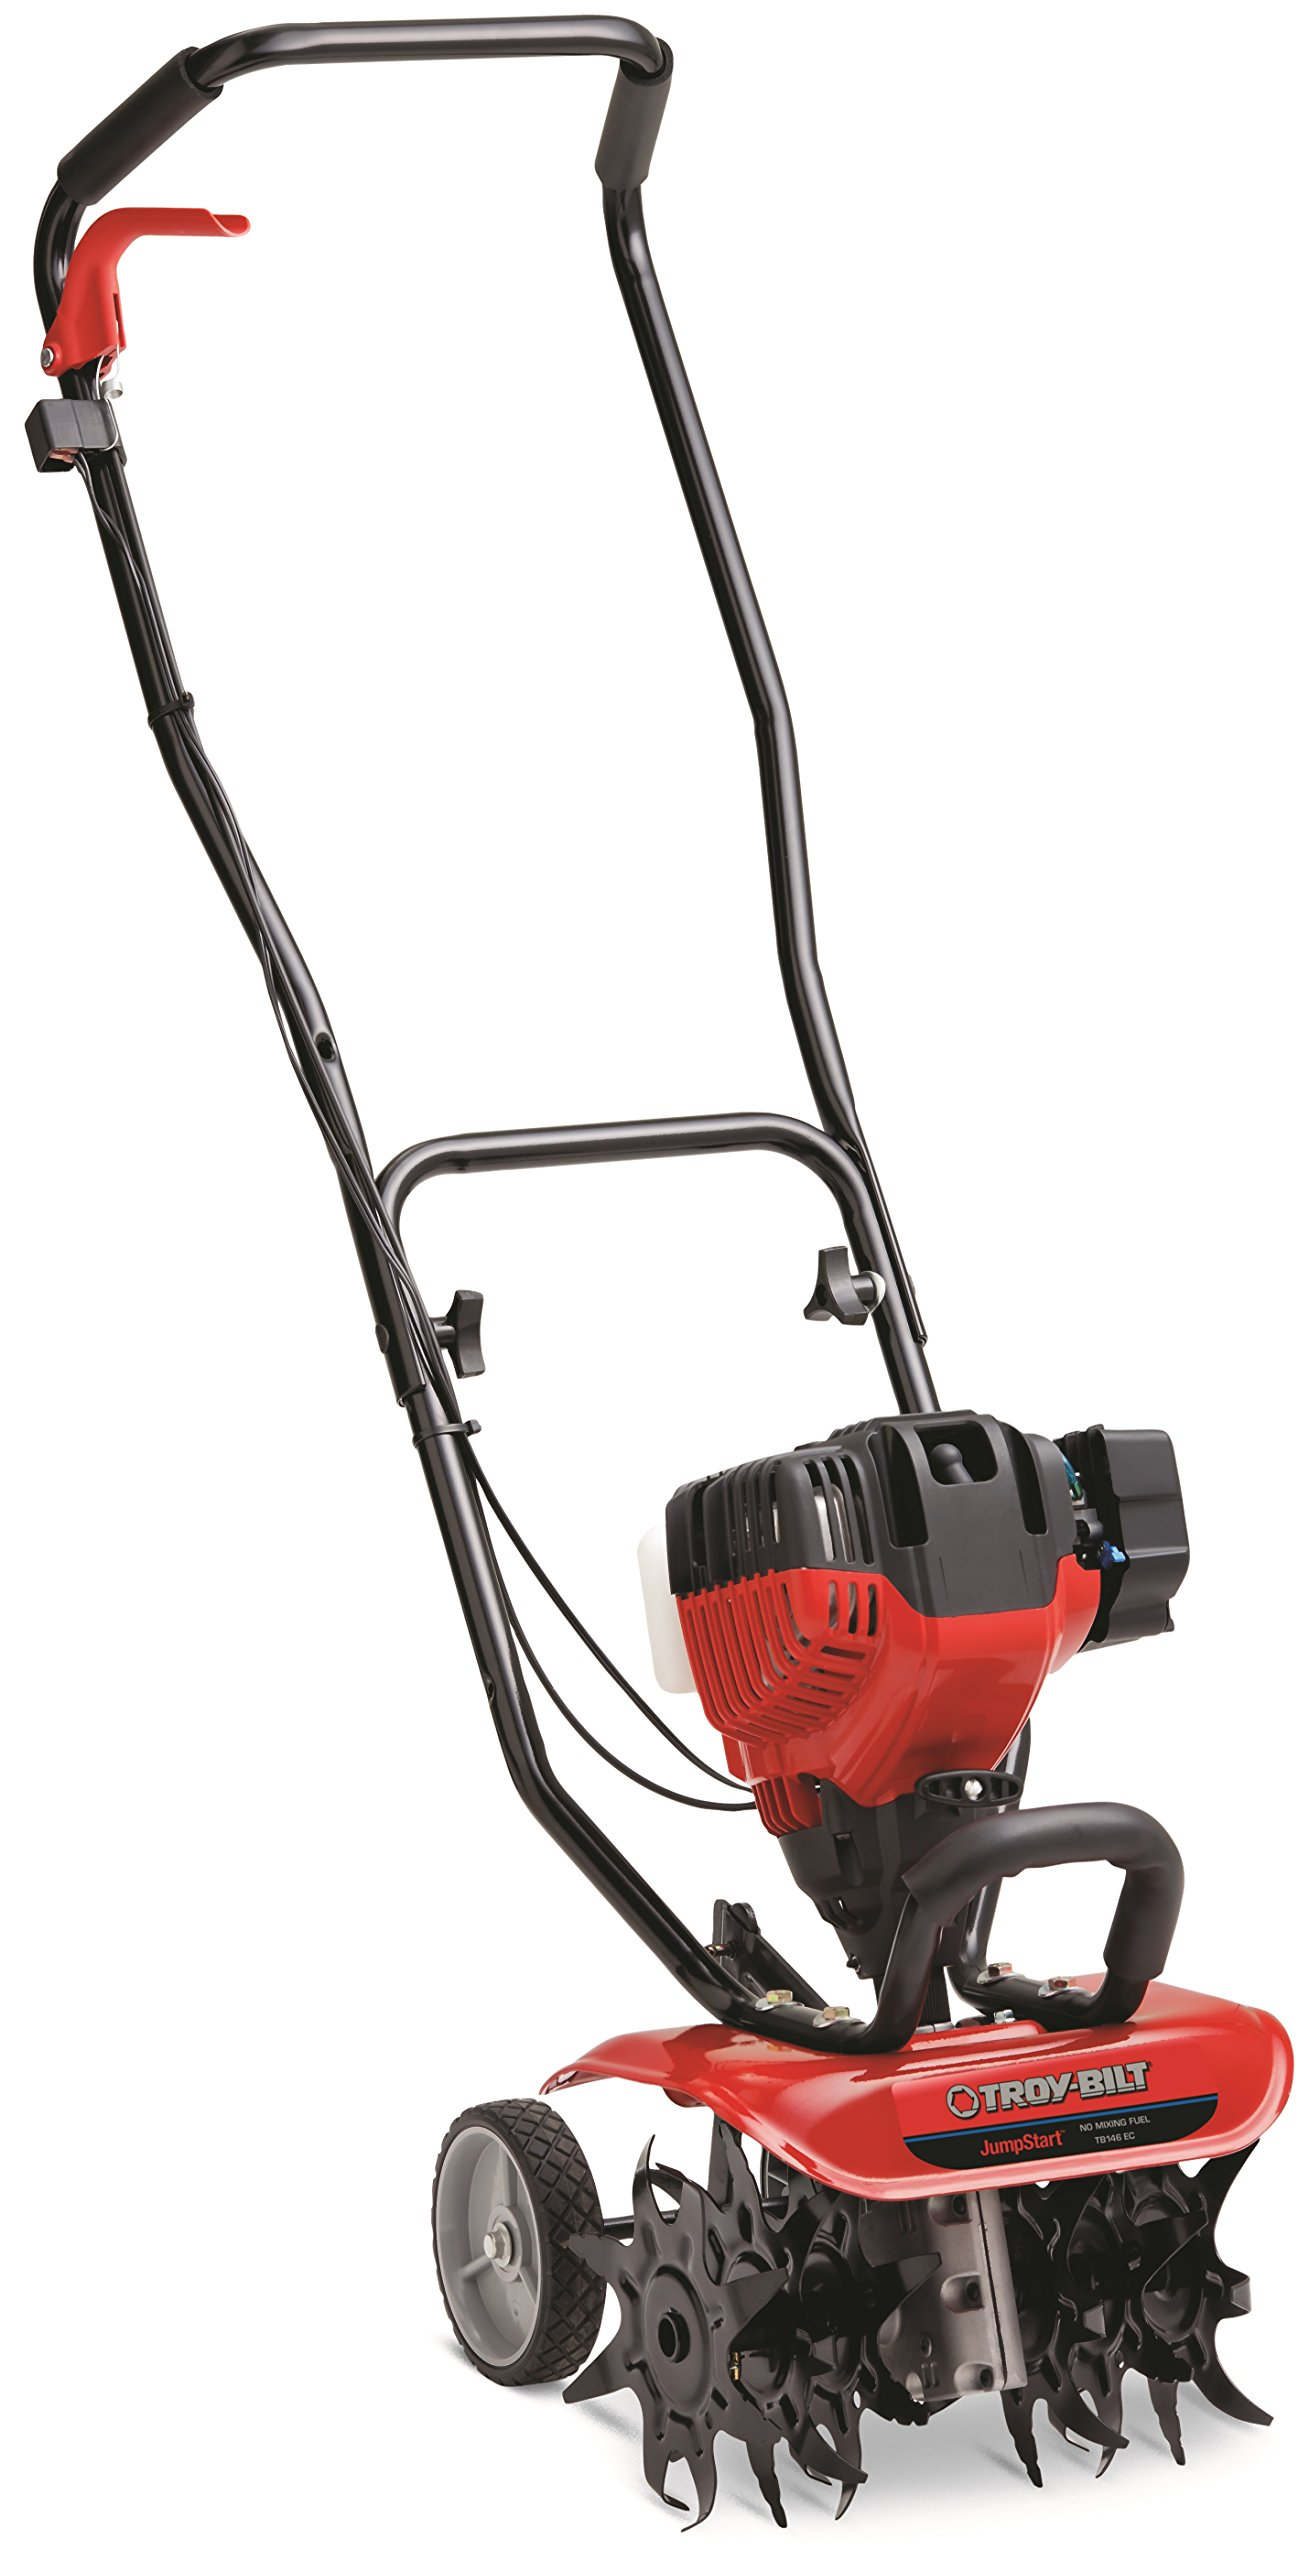 Troy-Bilt TB146 EC 29cc 4-Cycle Cultivator with JumpStart Technology by Troy-Bilt (Image #2)